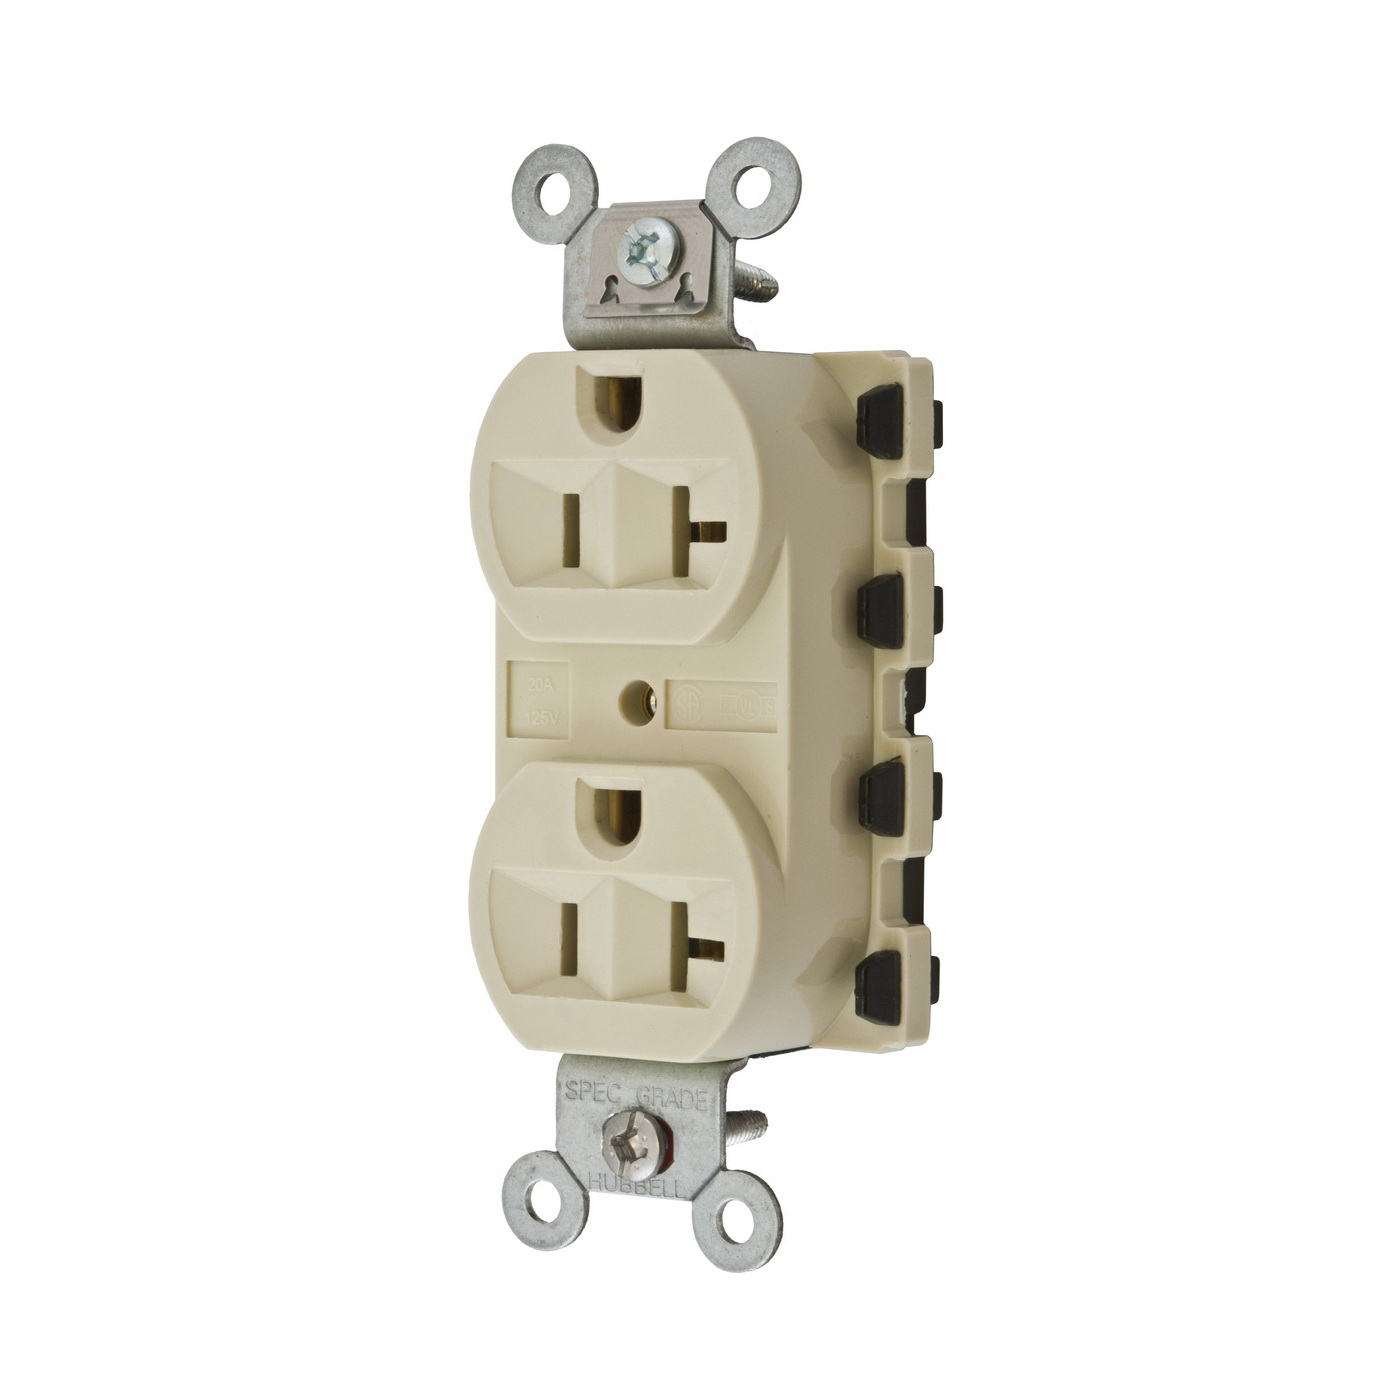 hubbell wiring device kellems snap2connect 20a 125v dplx ivory rh steinerelectric com